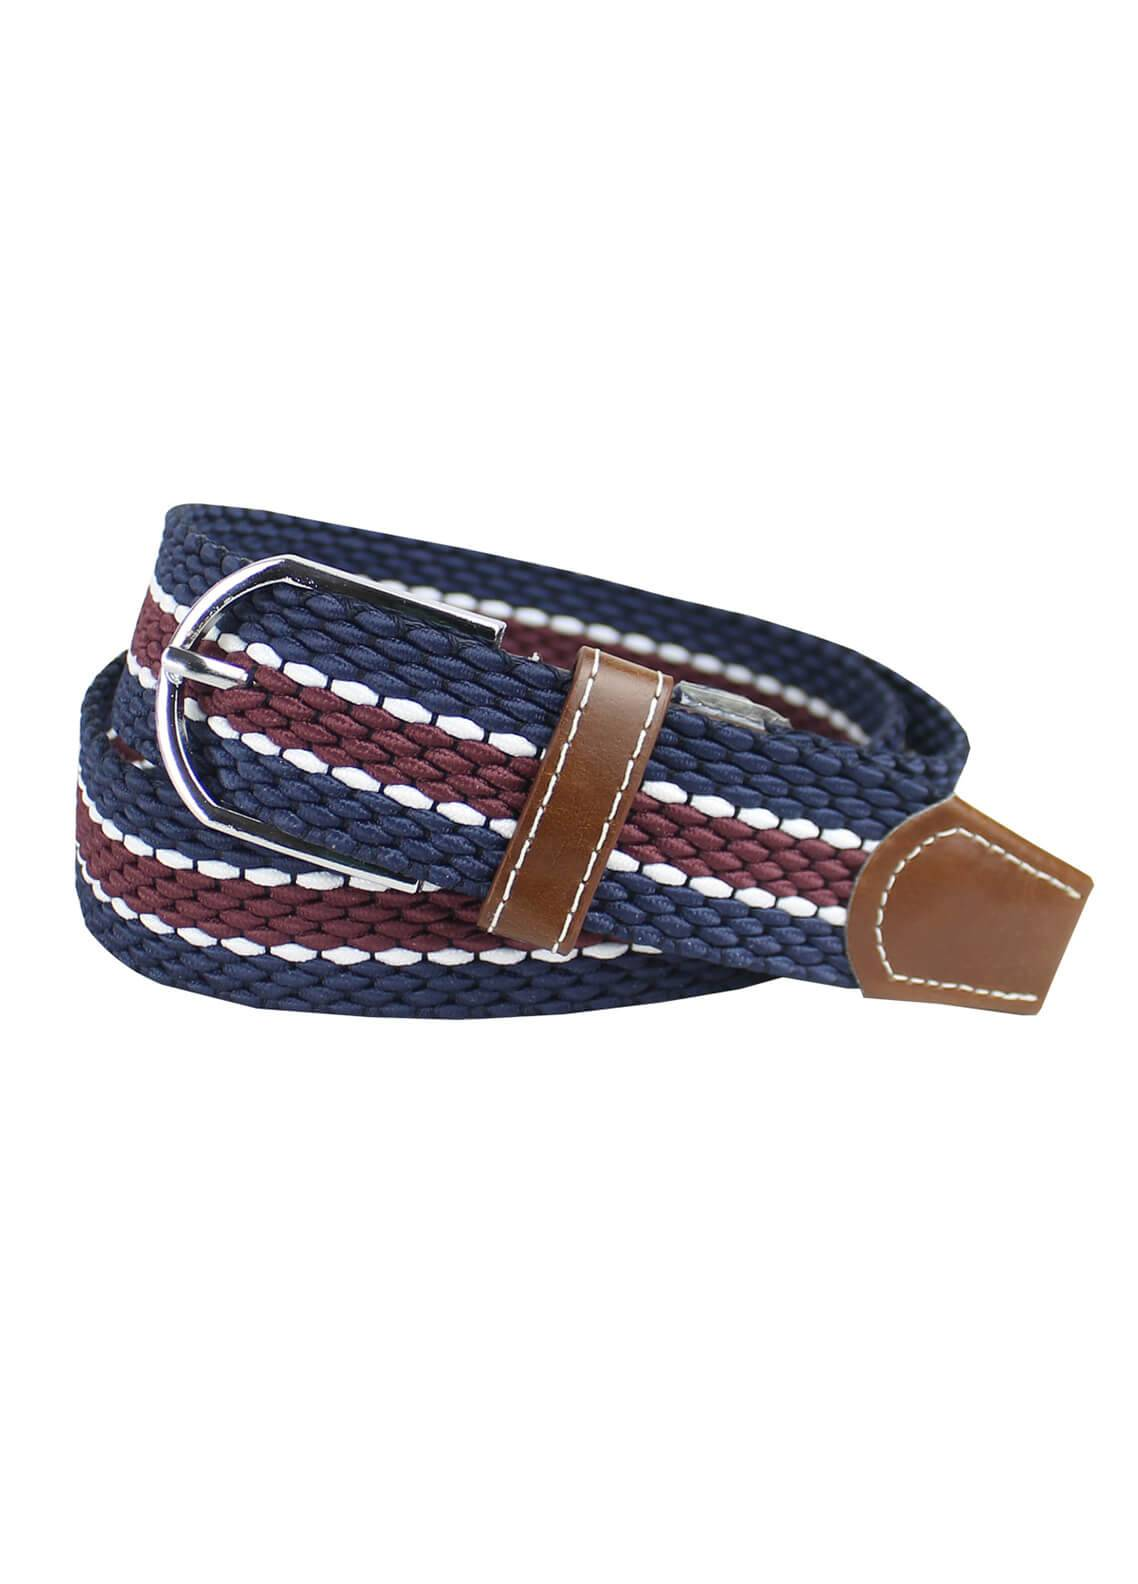 Shahzeb Saeed Textured Leather Men Belts BELT-135 Navy Blue & Maroon - Casual Accessories